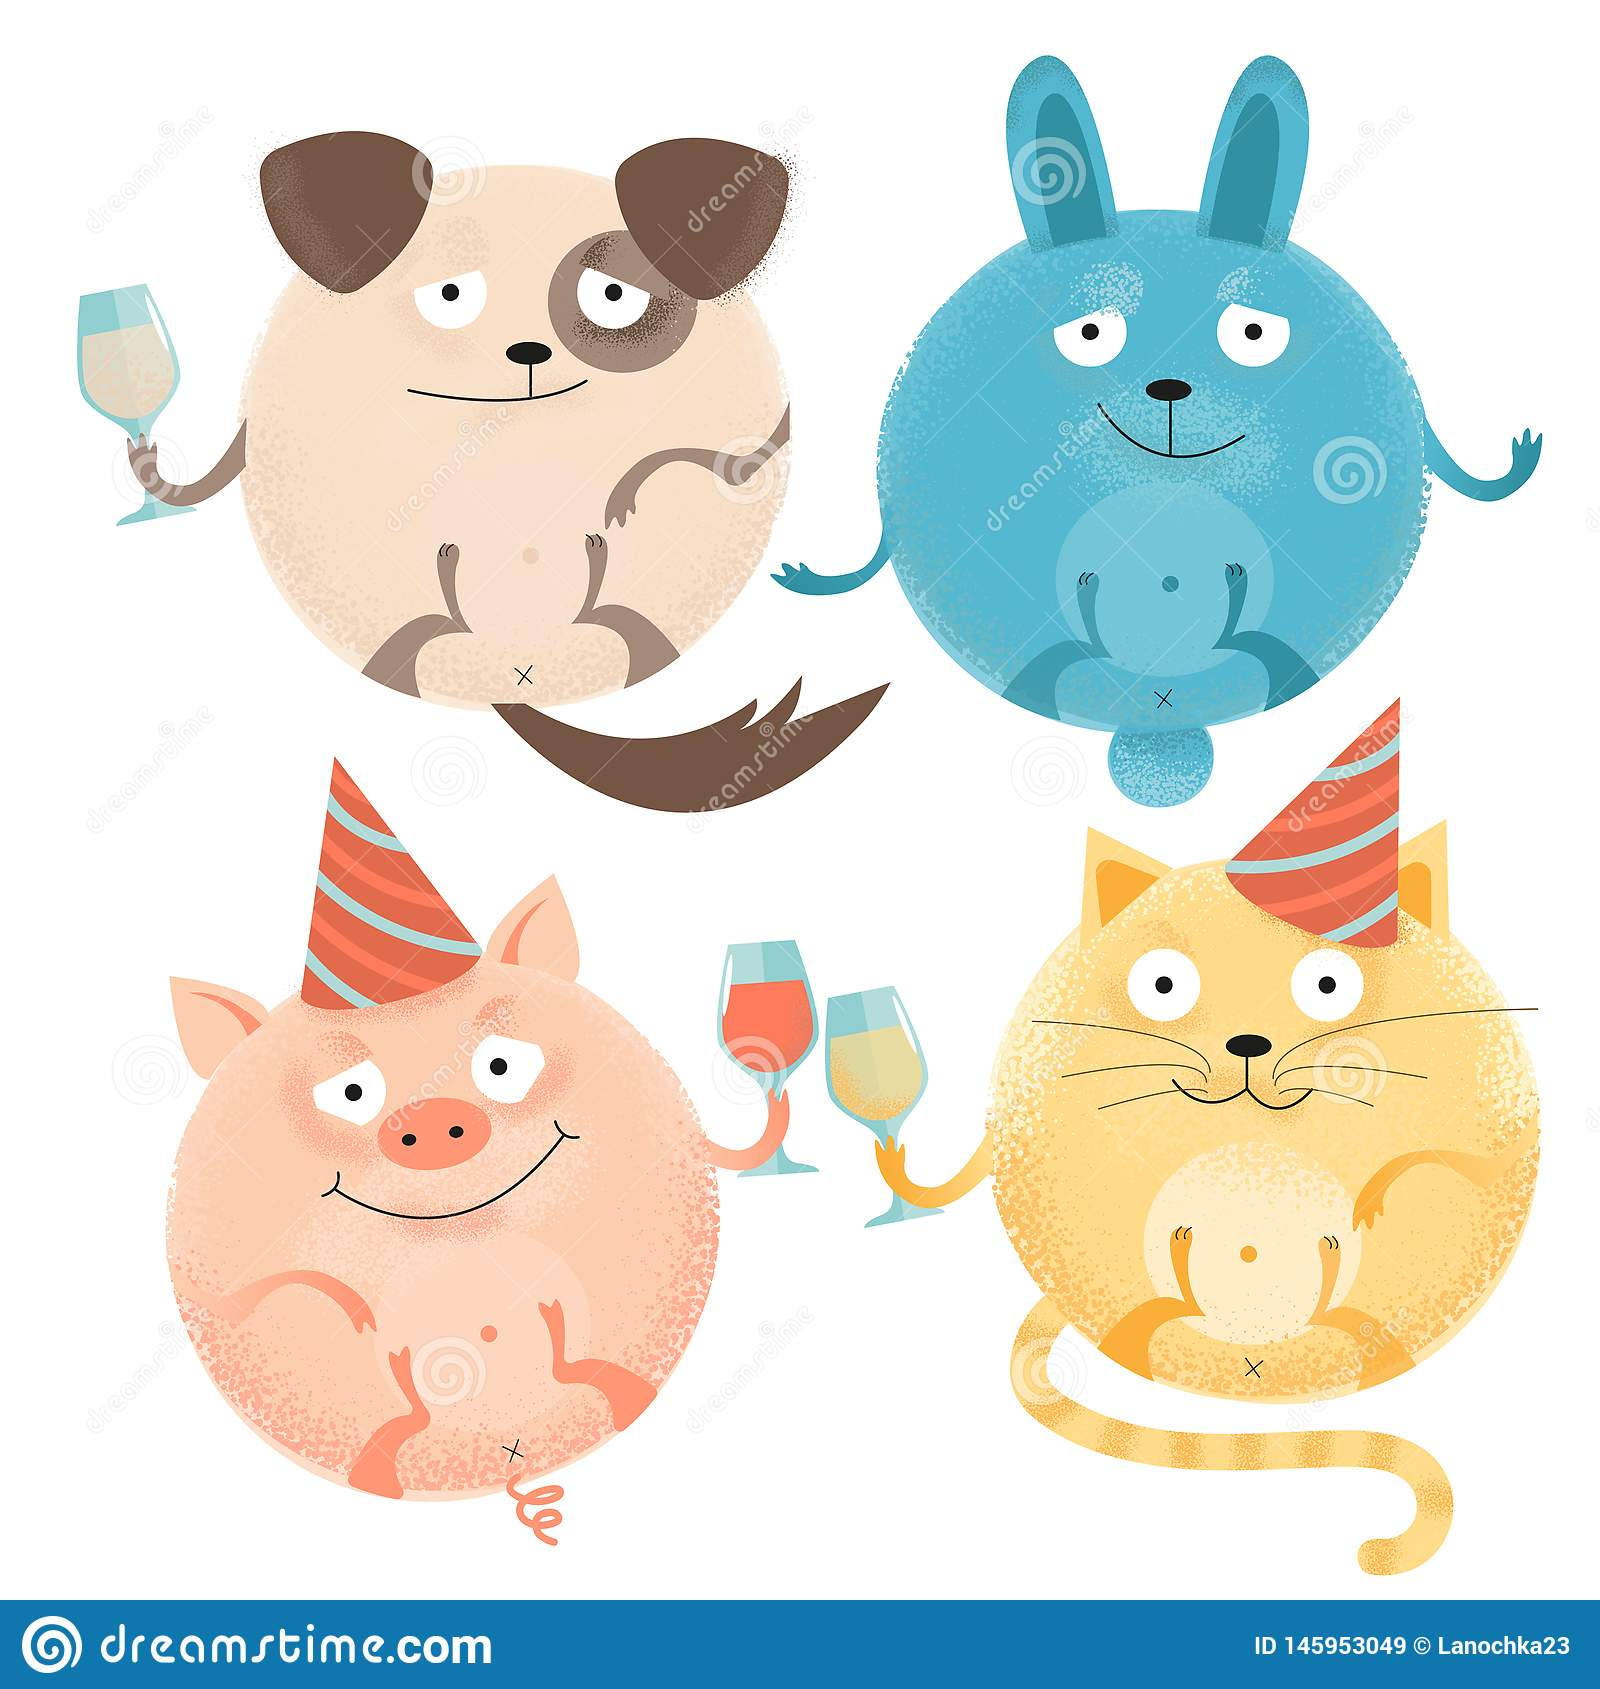 Set of 4 Cheerful round animals on holiday with glasses in festive caps. Happy smiling dog, rabbit, cat, pig. Flat textured